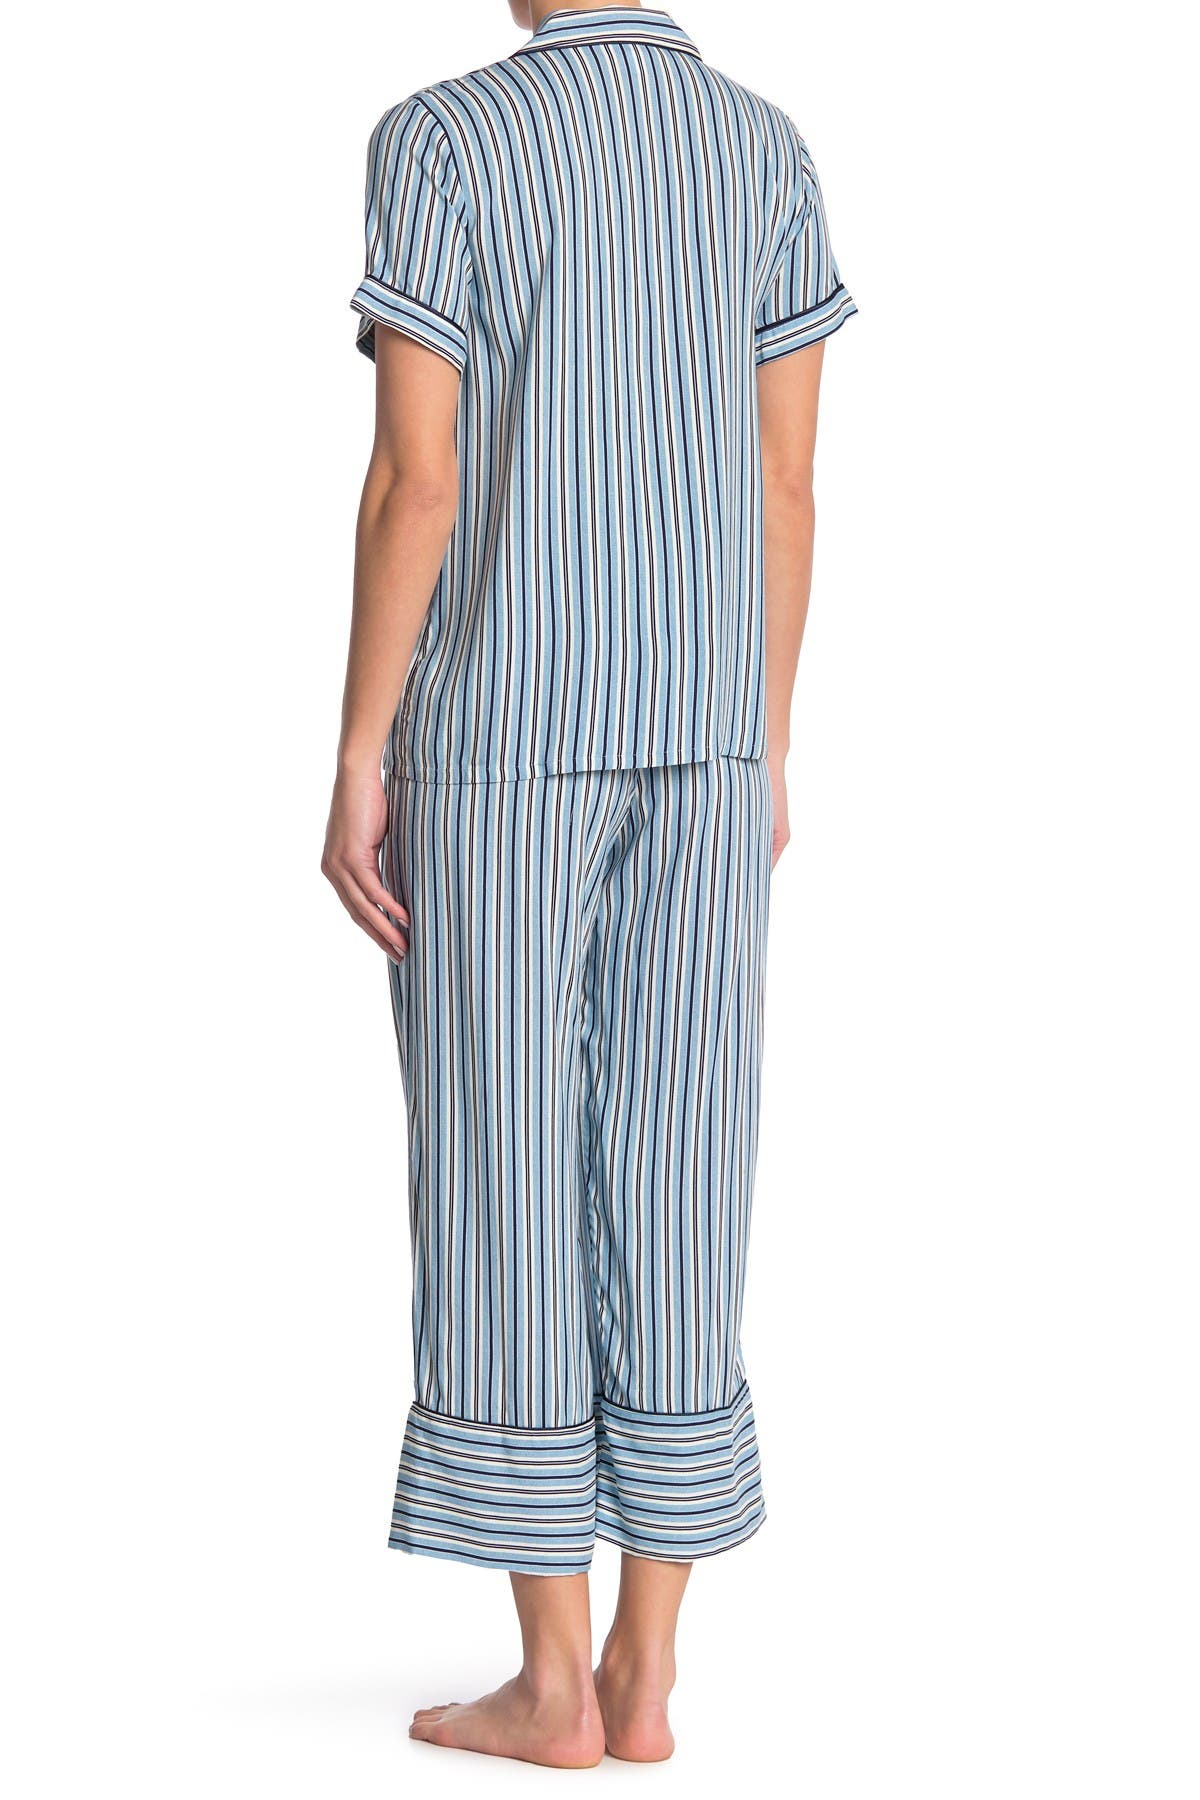 Image of In Bloom by Jonquil Beautiful Dreamer Striped Short Sleeve Top & Pants 2-Piece Pajama Set